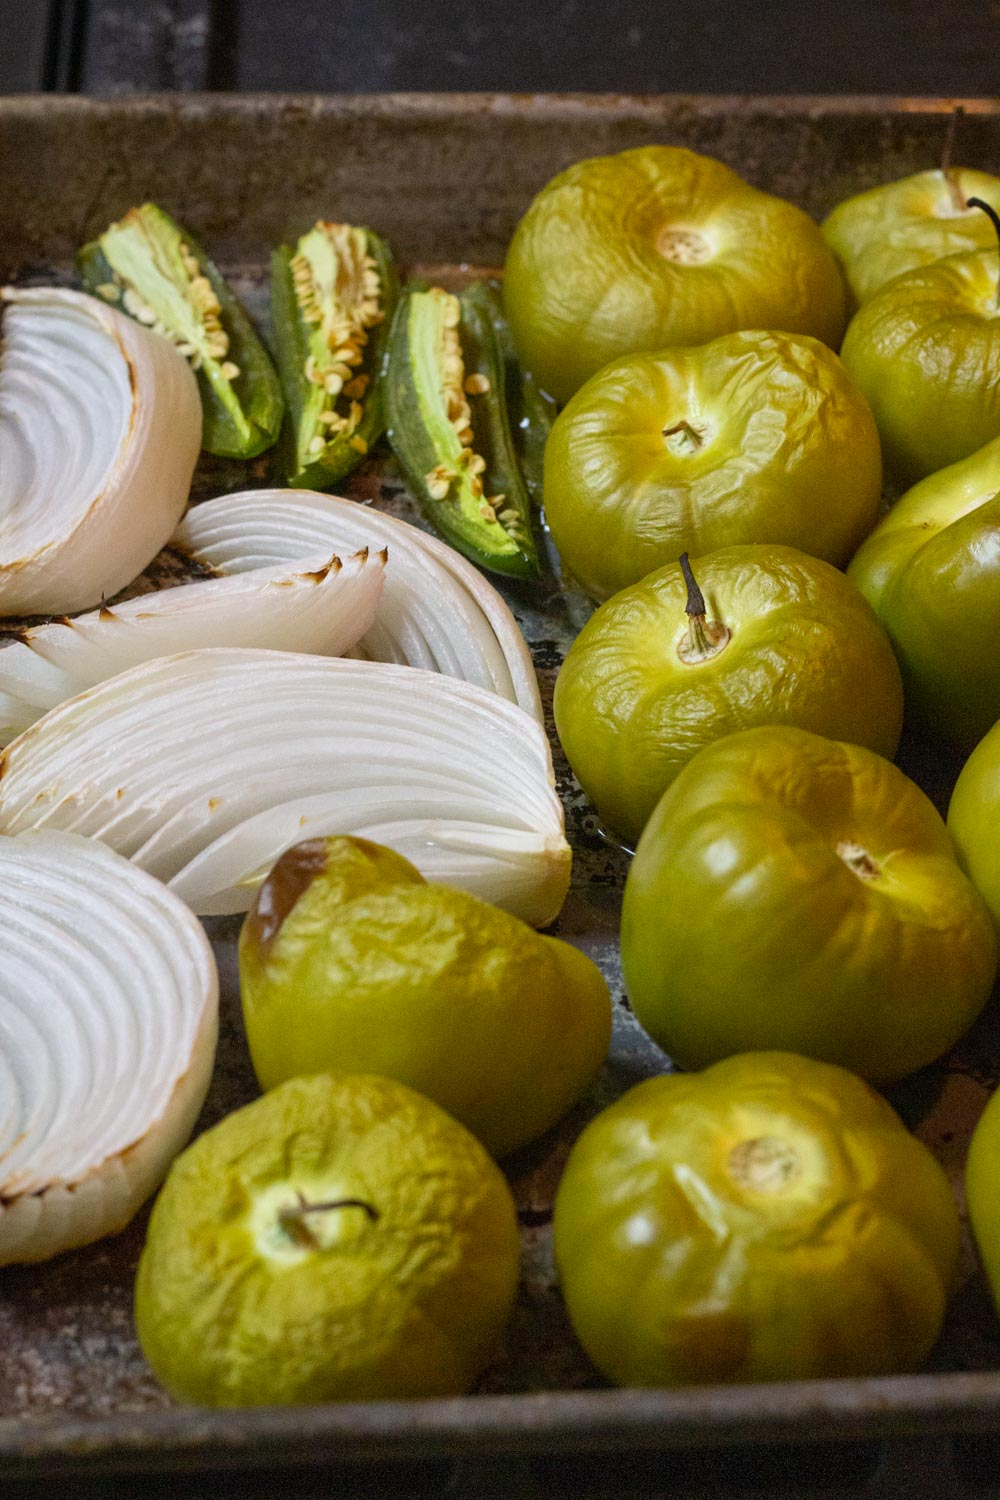 Roasted tomatillos which are wrinkly and a golden color. Onions and chiles are softened and golden.